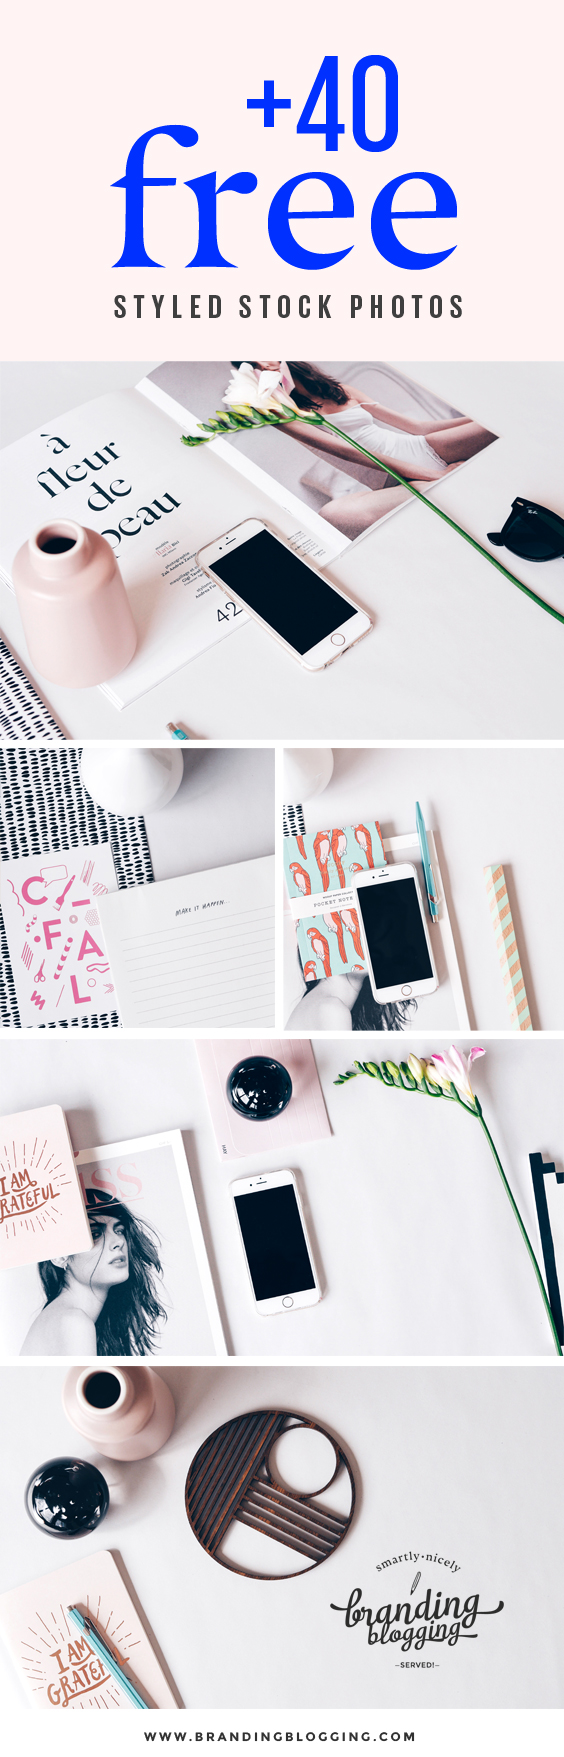 Looking for beautiful pictures to add to your content? 40 FREE styled stock photo designed especially for bloggers and creative entrepreneurs. Download the free pack!